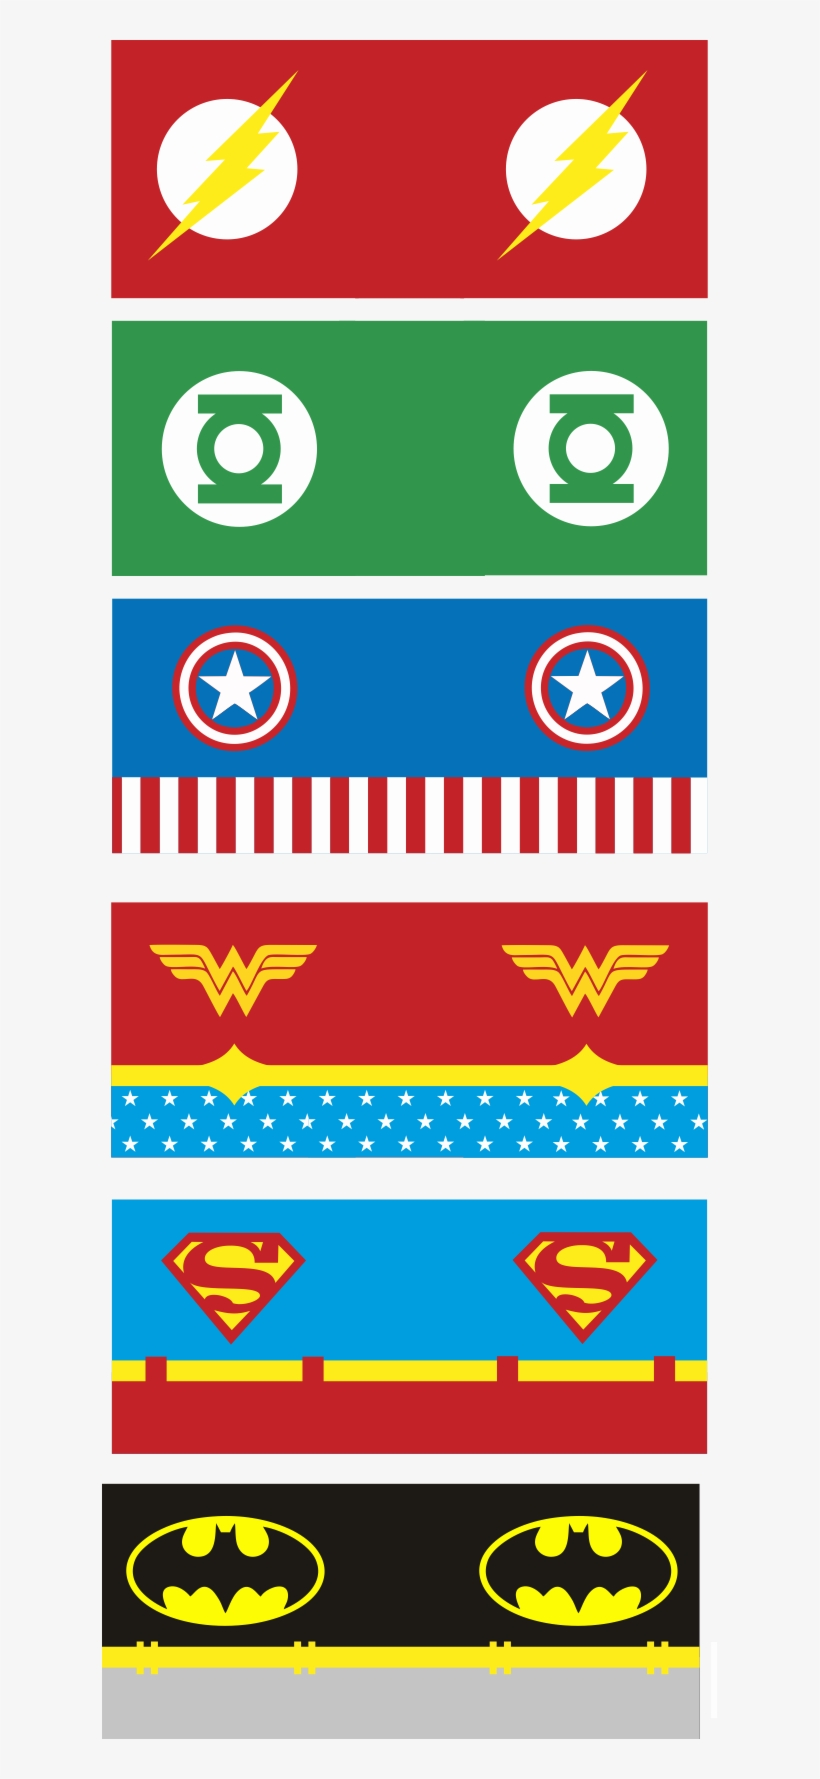 photo about Printable Superhero Logos identify Superman Get together, Superhero Occasion, Superhero Emblems, Avengers